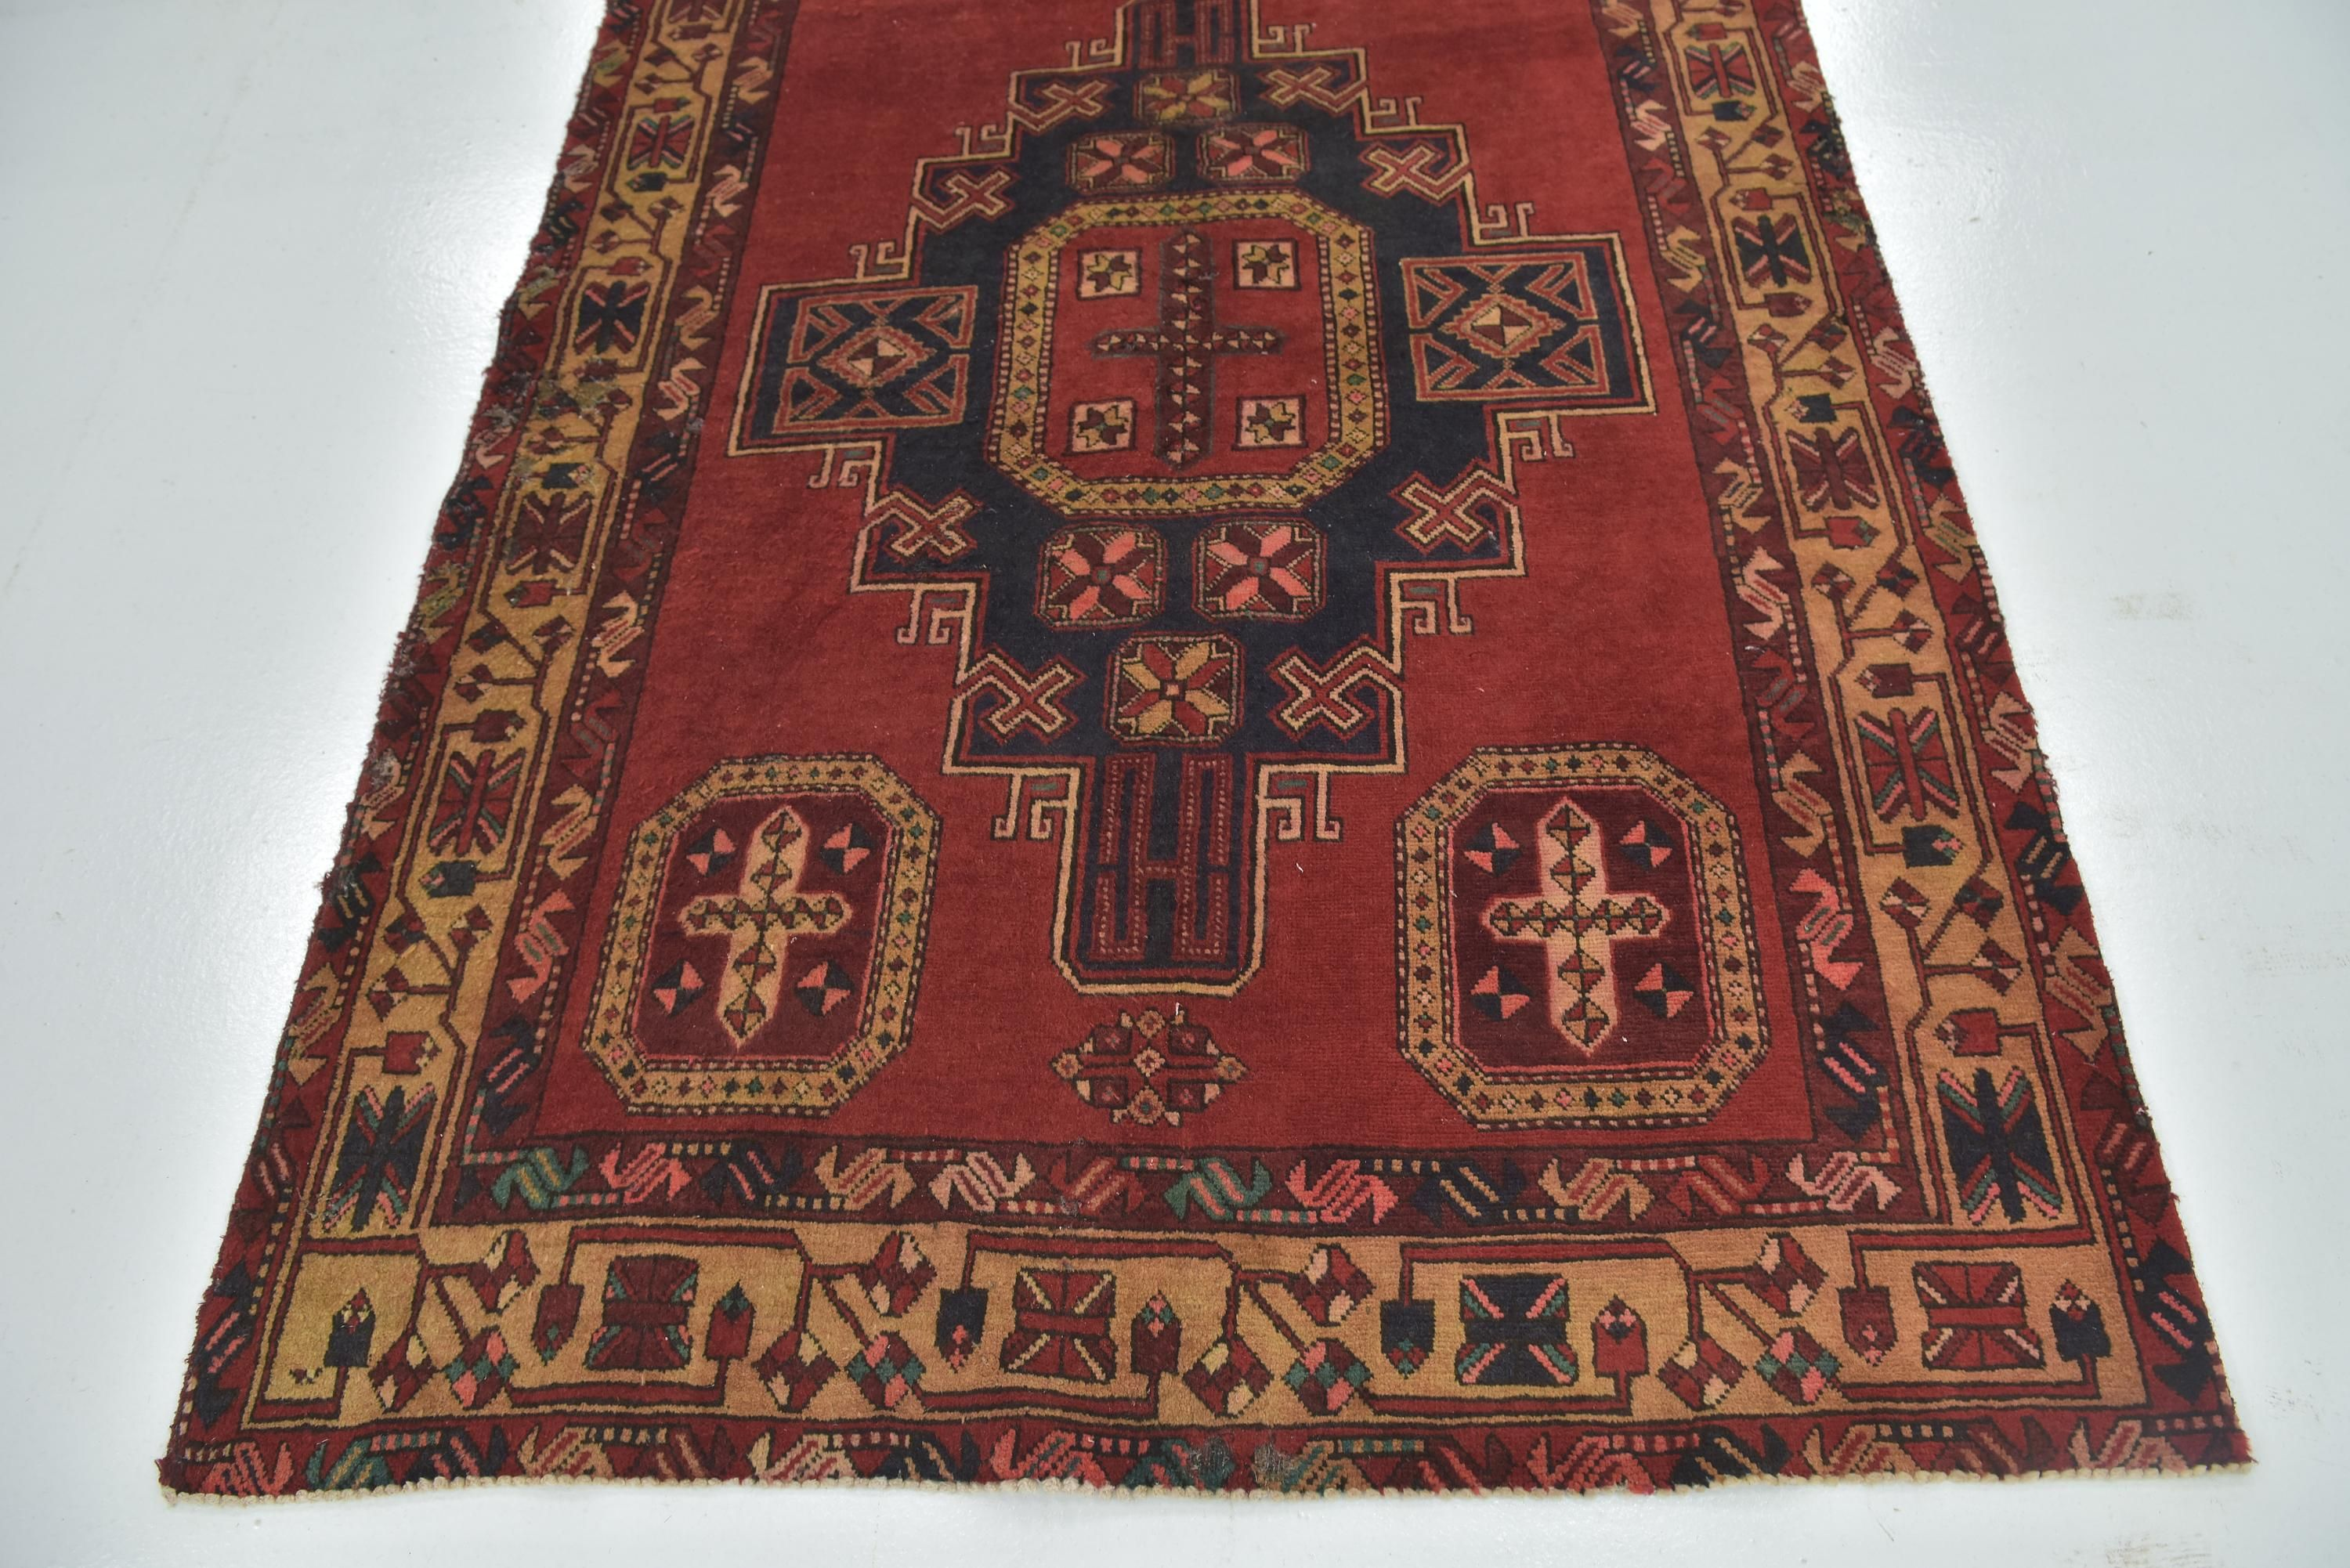 Red 4 10 X 10 9 Meshkin Persian Runner Rug Affiliate Meshkin Red Rug Runner Persian Sponsored Persian Rug Runners Rug Runner Buy Rugs